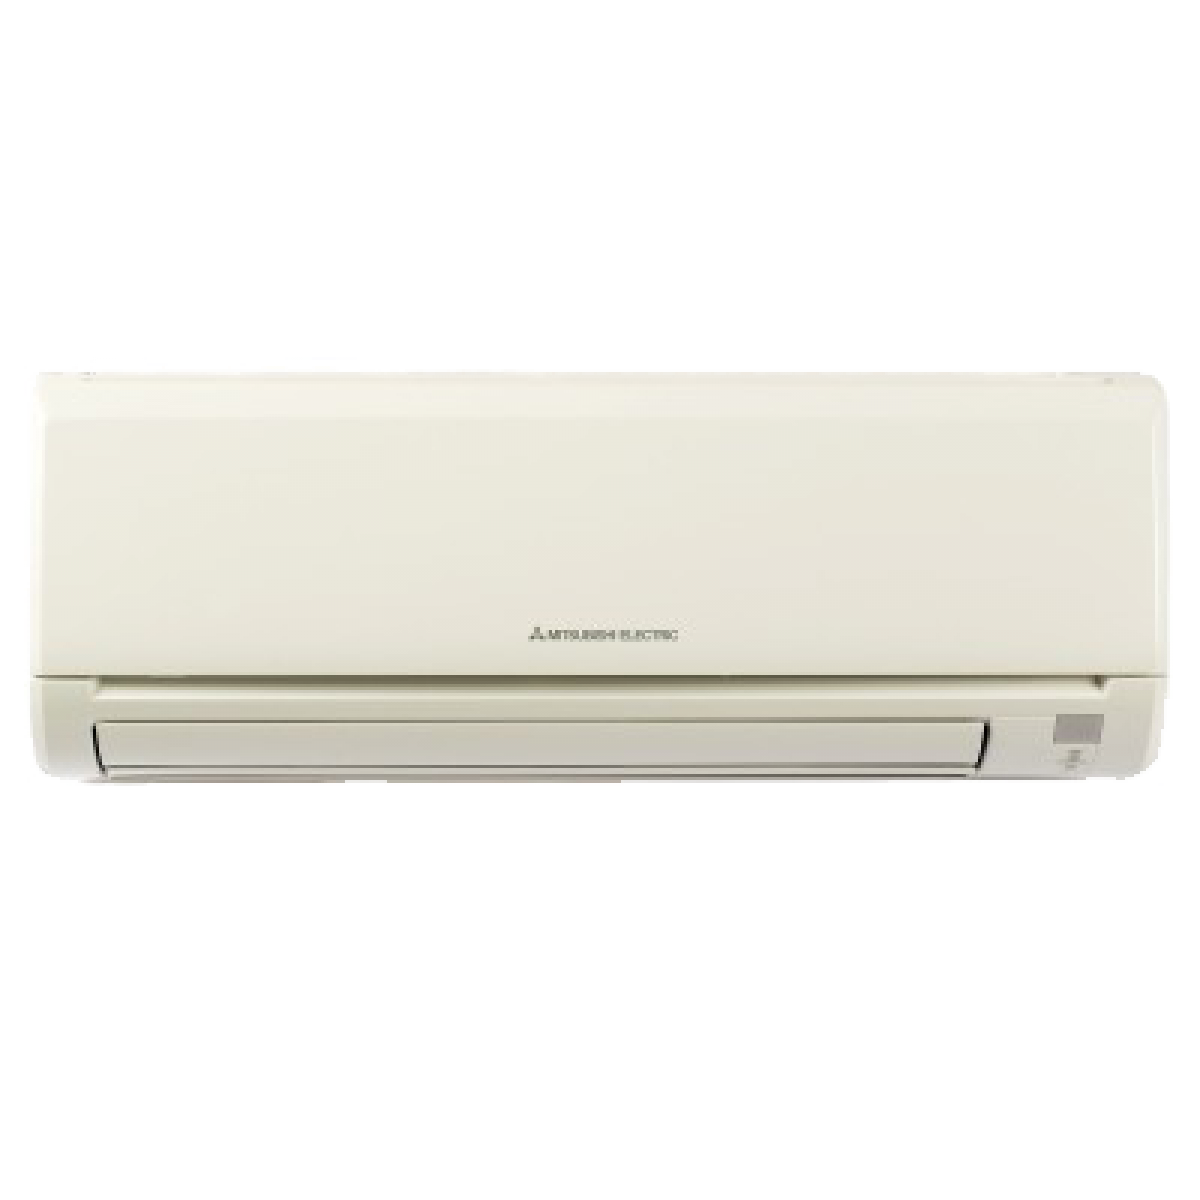 MXZ 2B20NA Split Air Conditioning and Heating 20K BTU 2 Indoor Units  #59533D